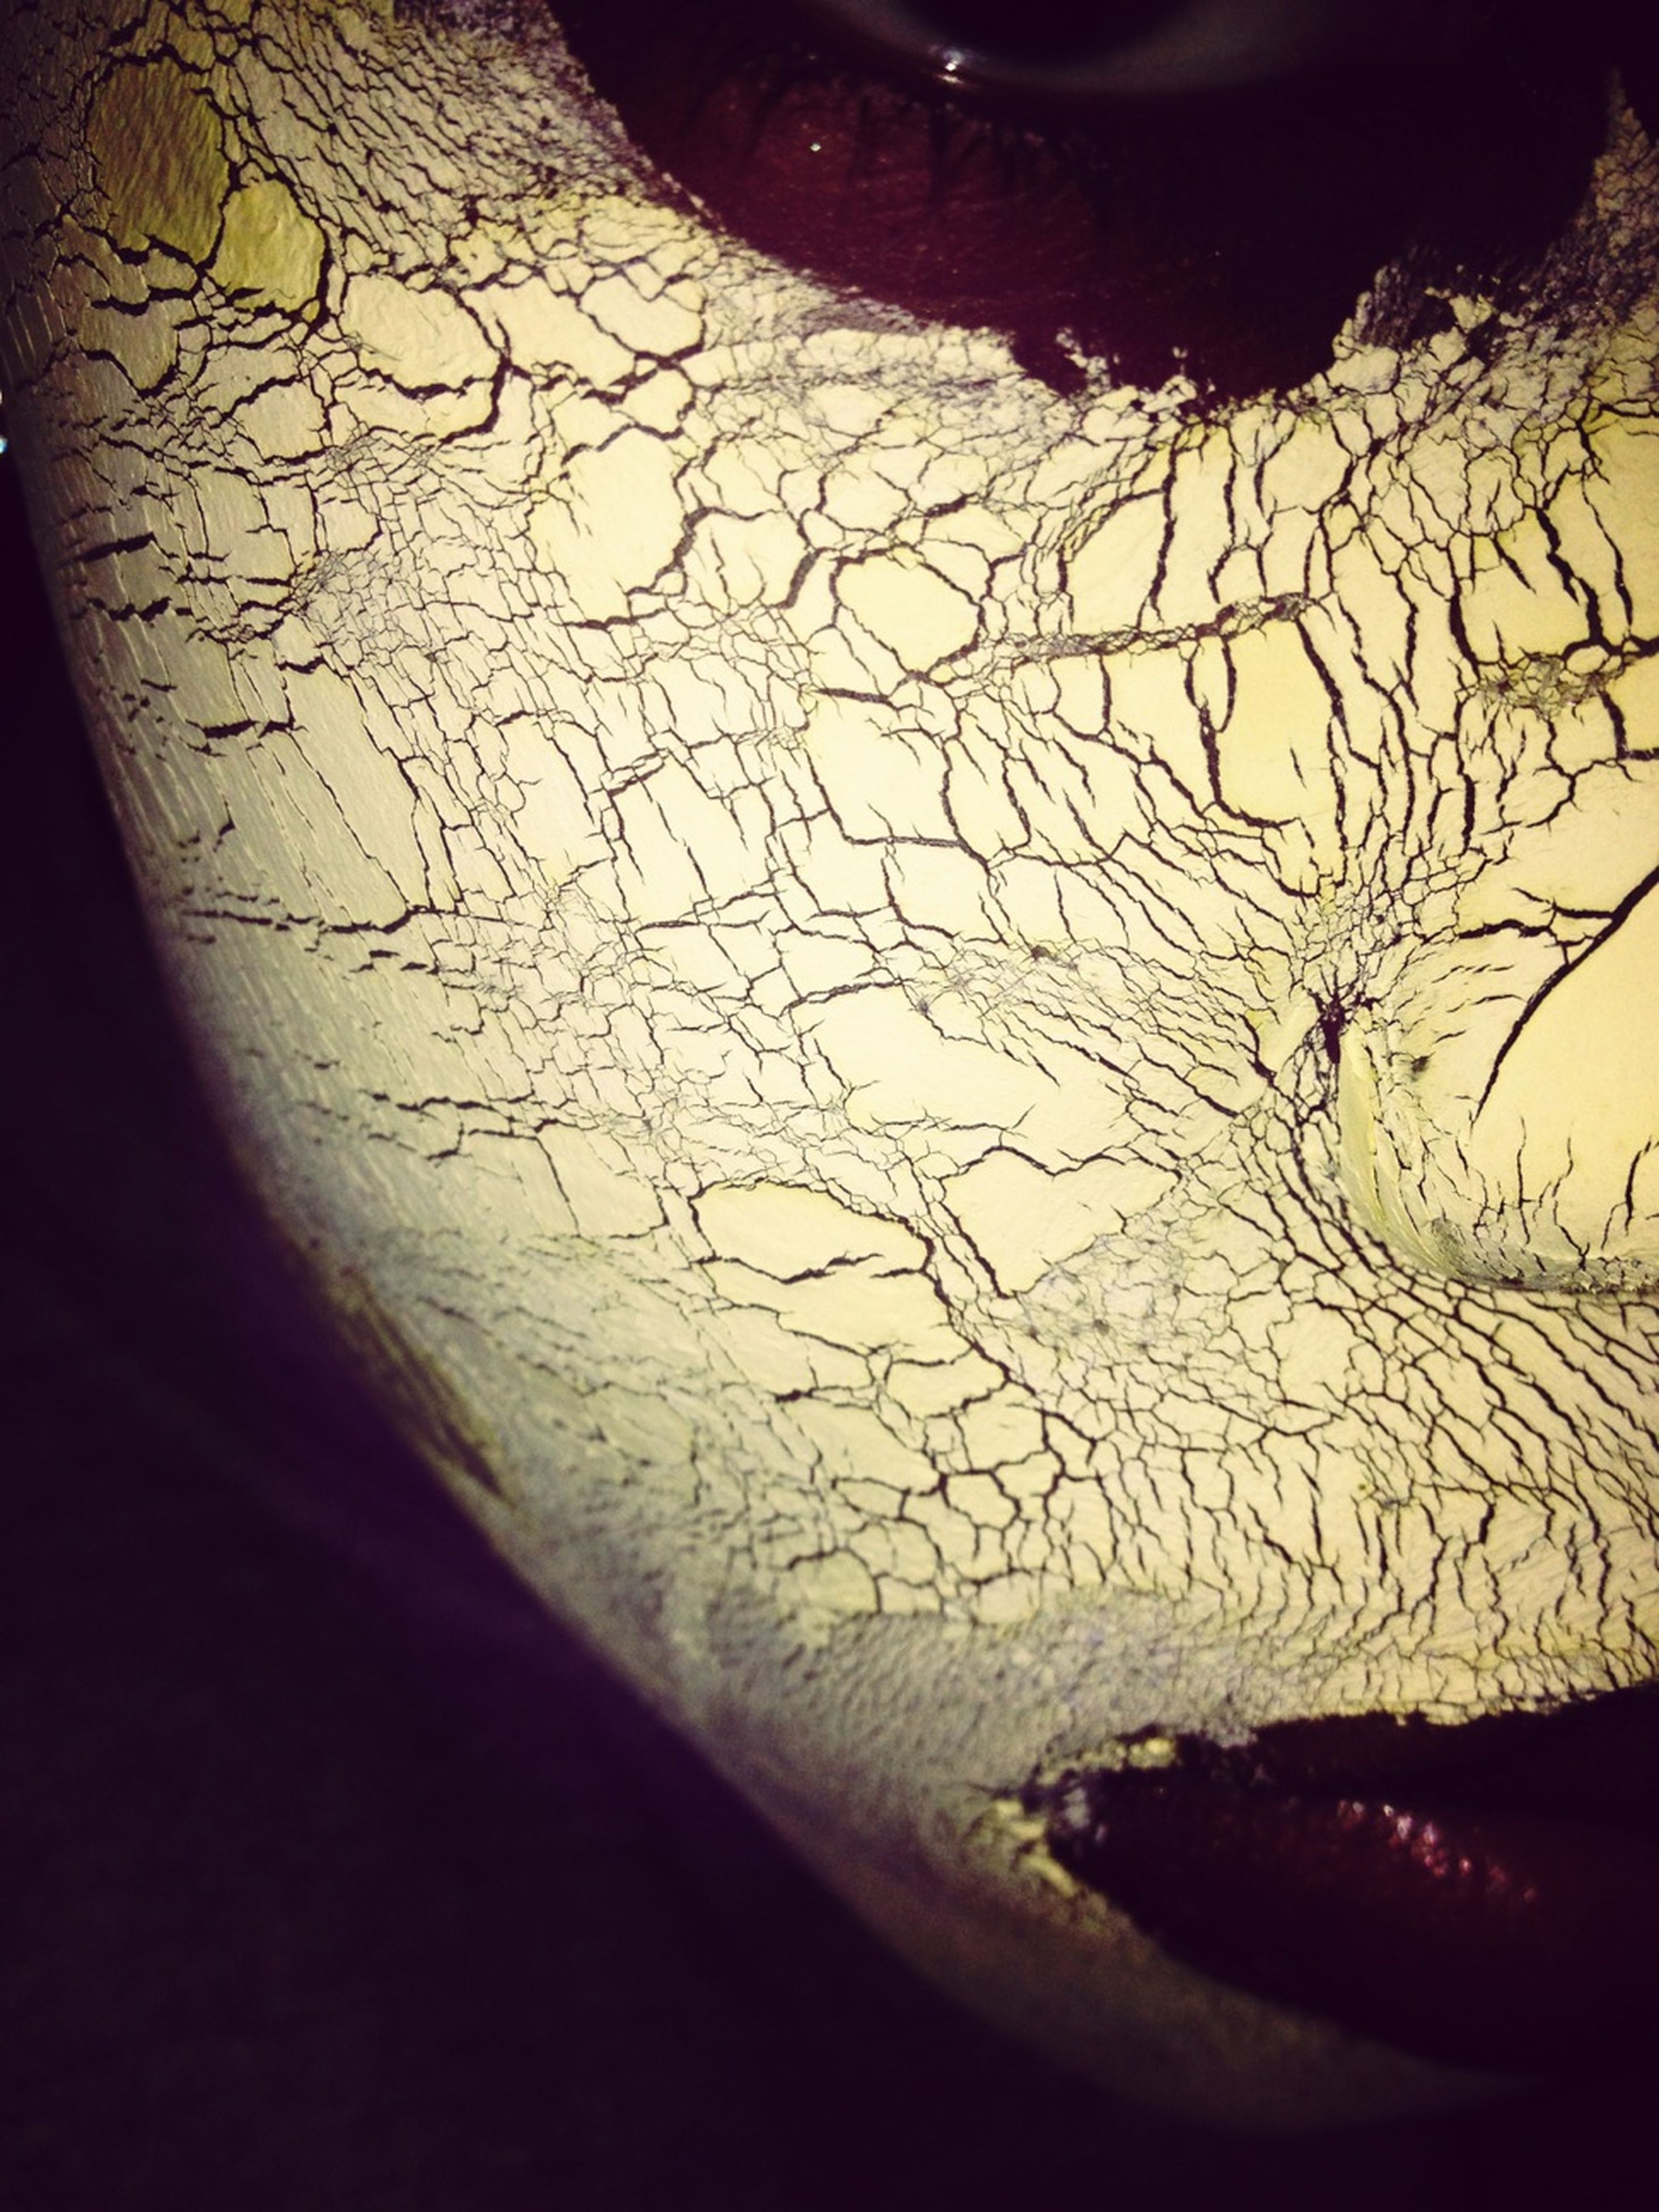 close-up, indoors, part of, studio shot, copy space, ideas, cropped, one person, abstract, water, detail, reflection, pattern, mystery, digital composite, human skin, transparent, design, full frame